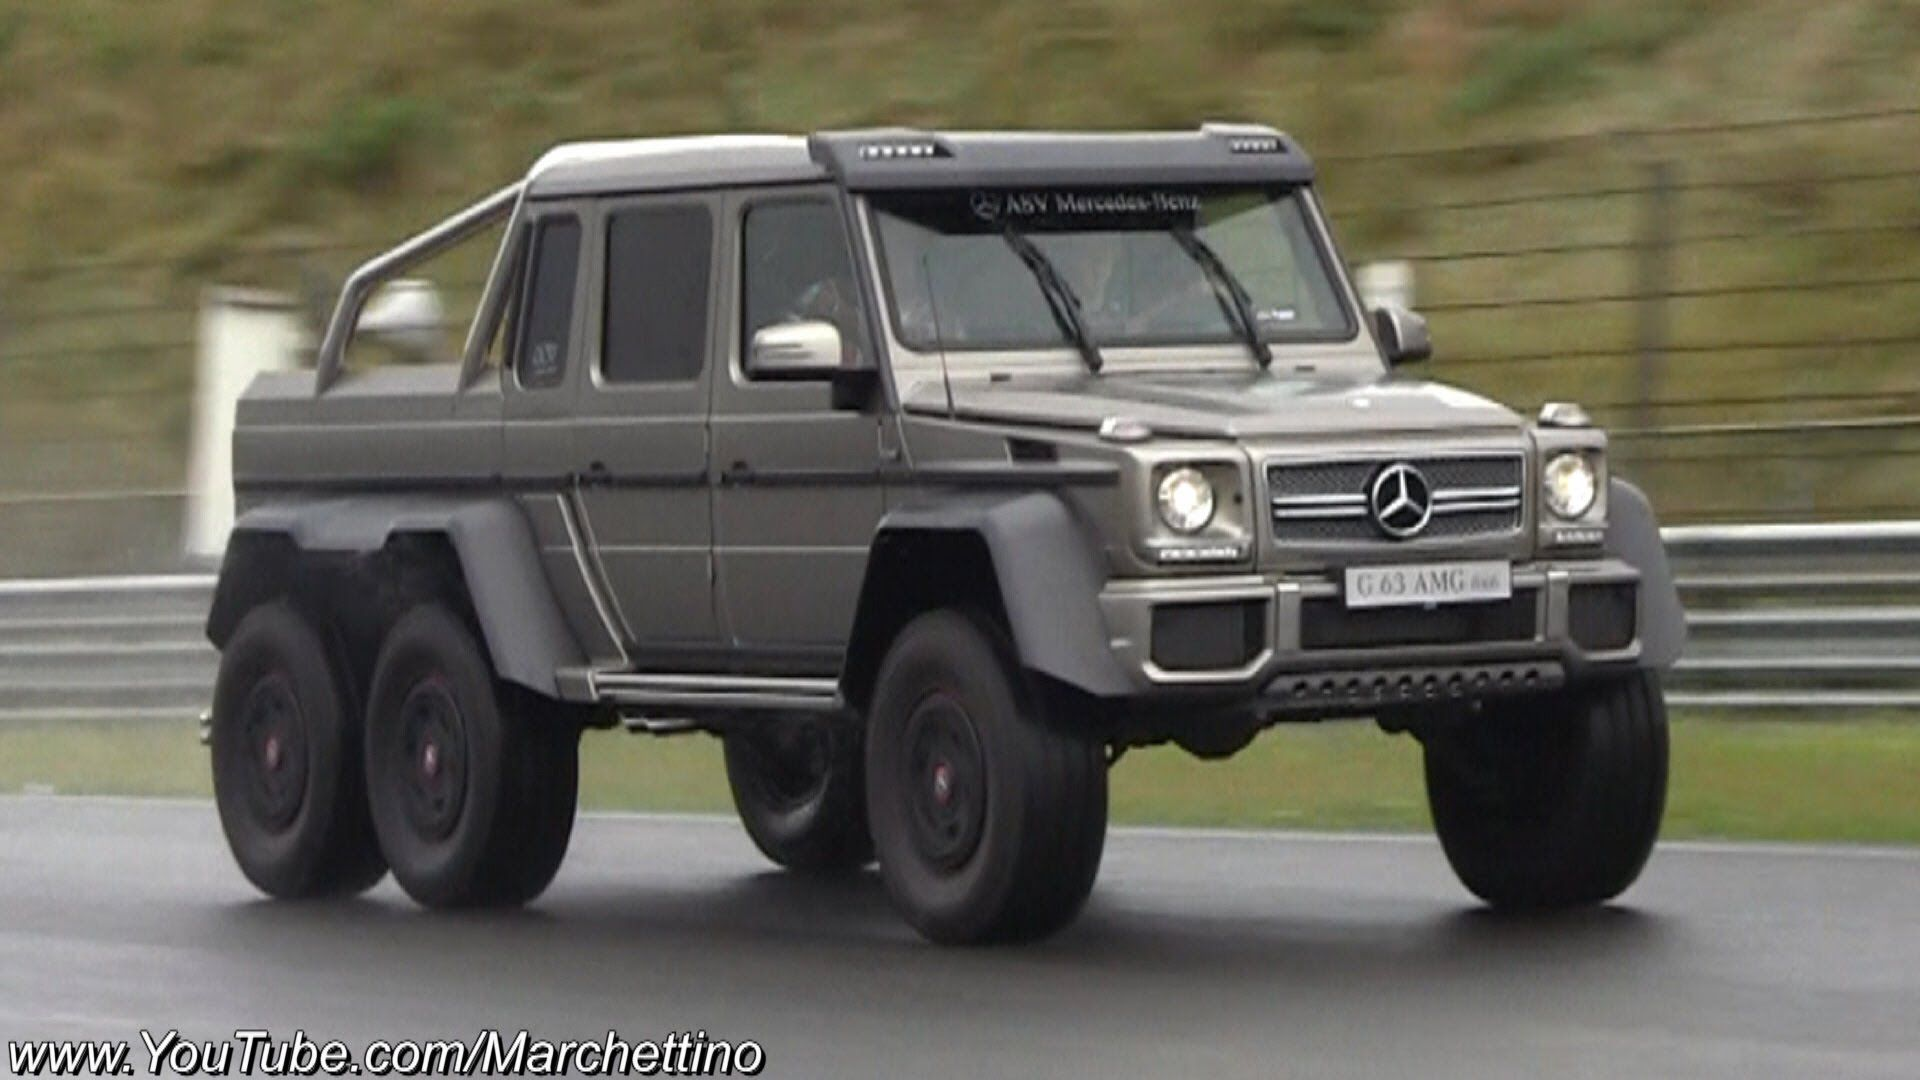 mercedes g63 amg 6x6 races supercars on track anything every thing with wheels pinterest. Black Bedroom Furniture Sets. Home Design Ideas